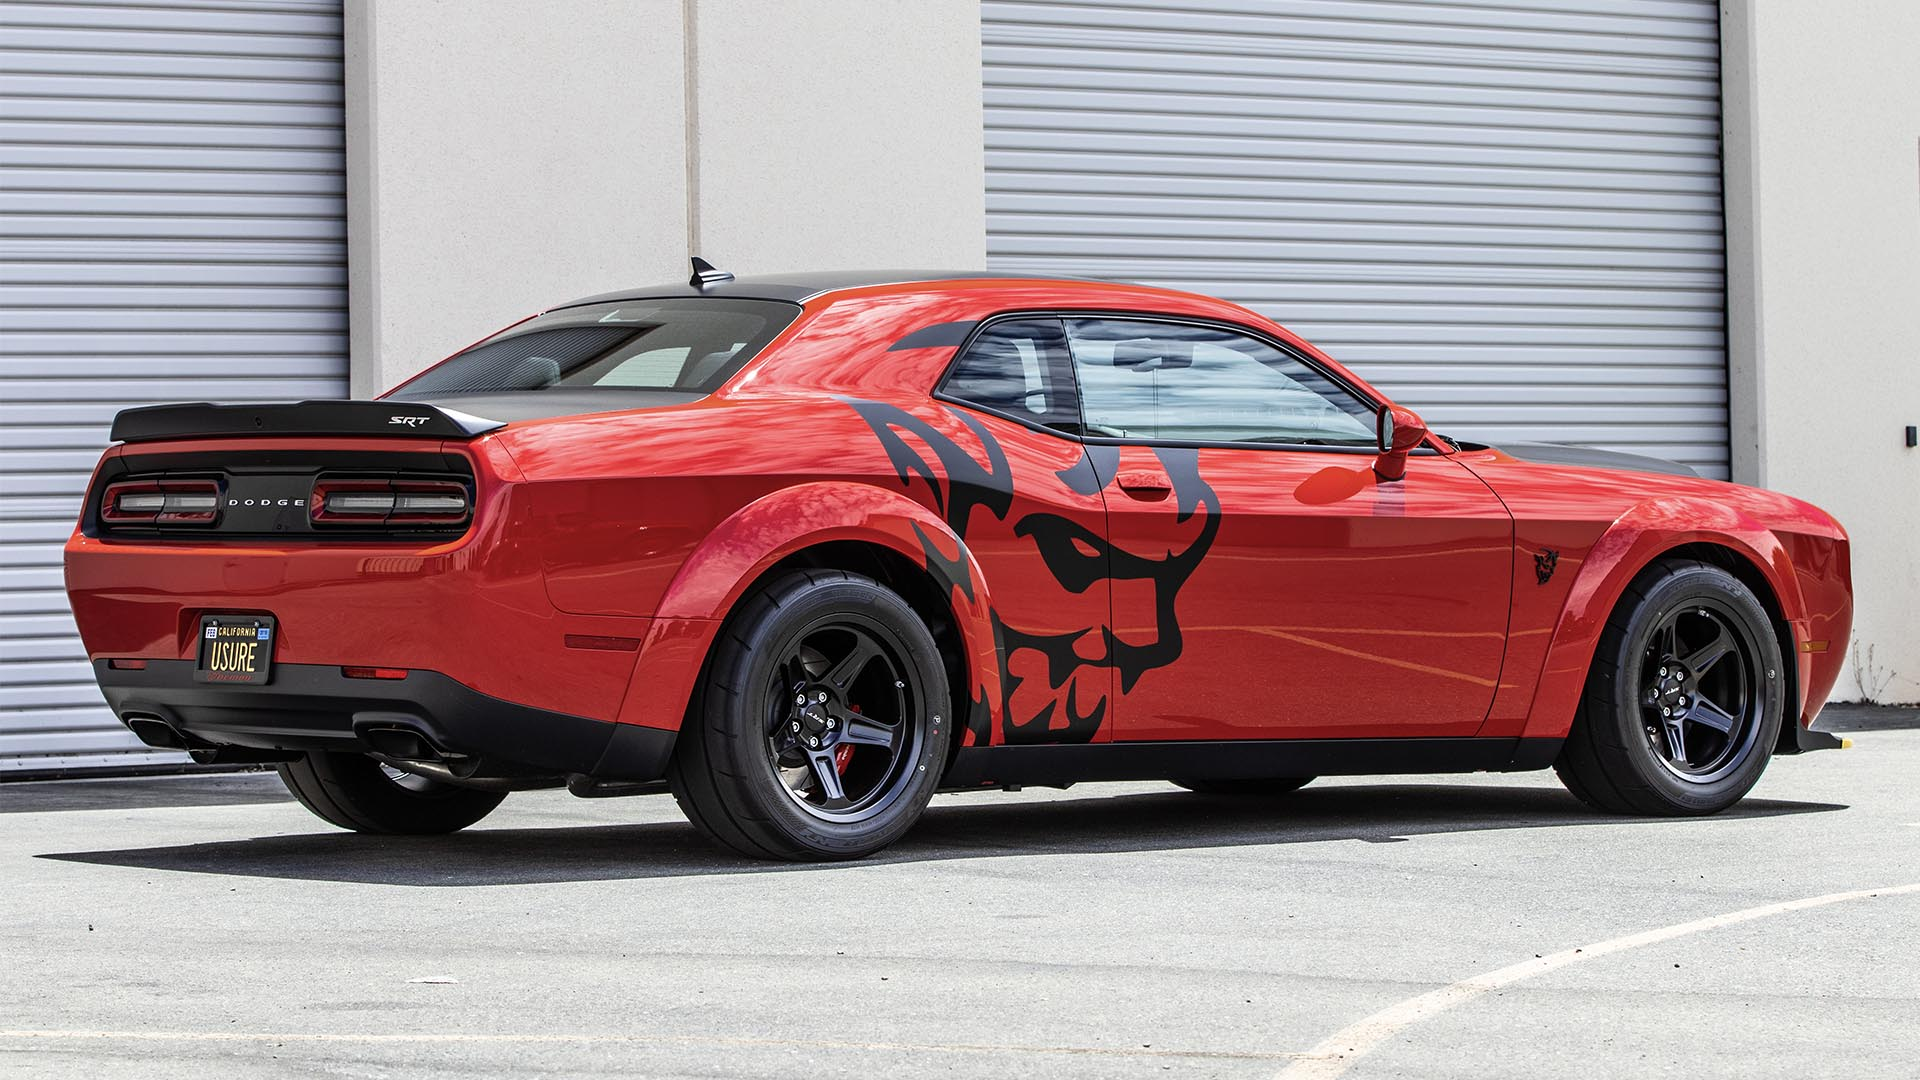 2018 Dodge Challenger Srt Demon Decal Paint Wraps Palmer Signs Inc